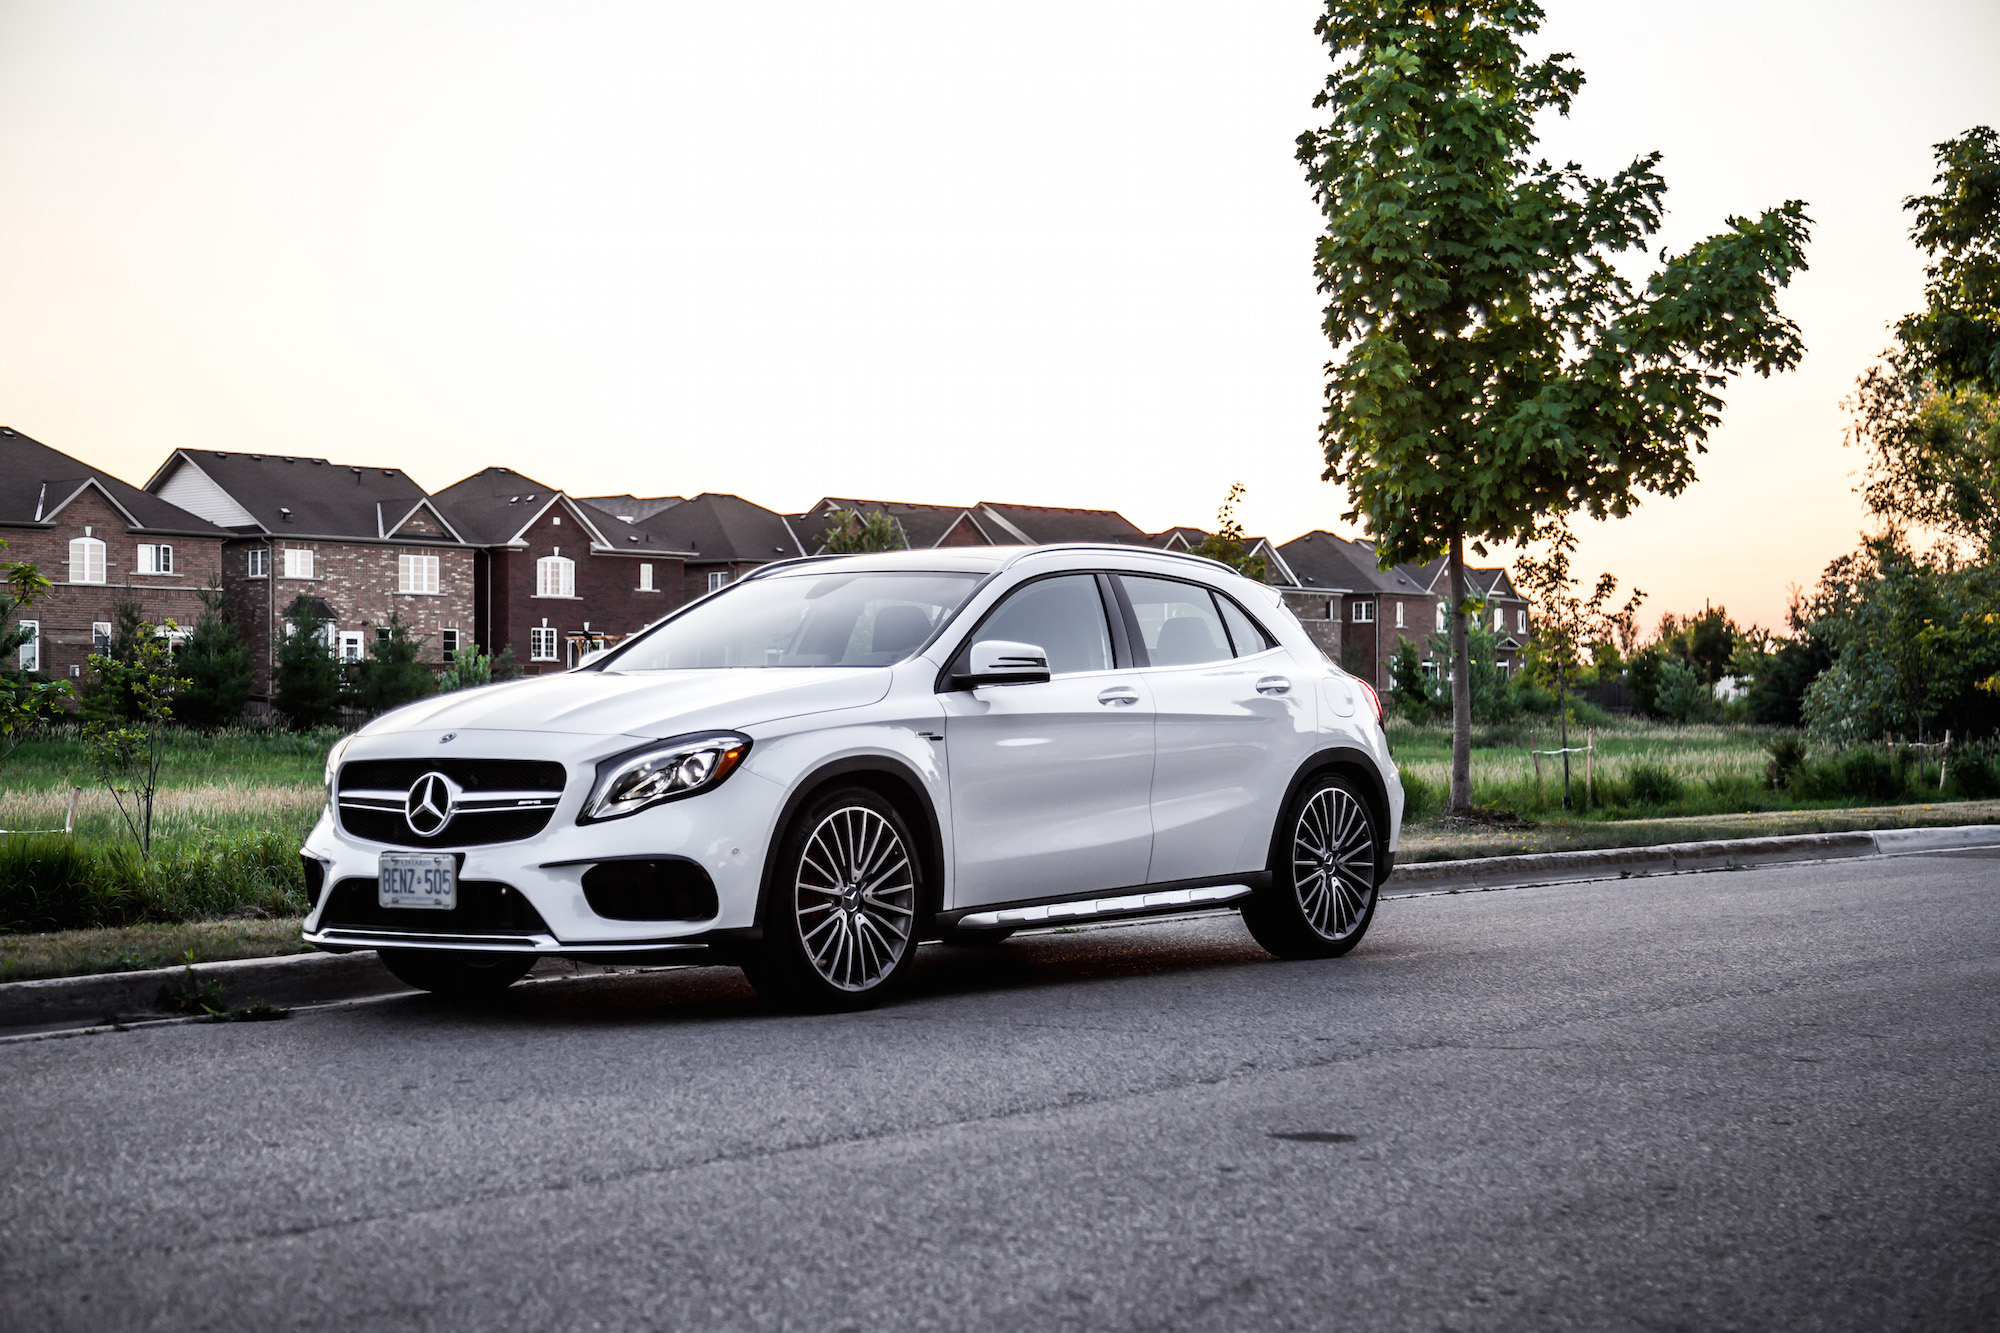 Best Awd Sports Cars >> Review: 2018 Mercedes-AMG GLA 45 4MATIC | CAR